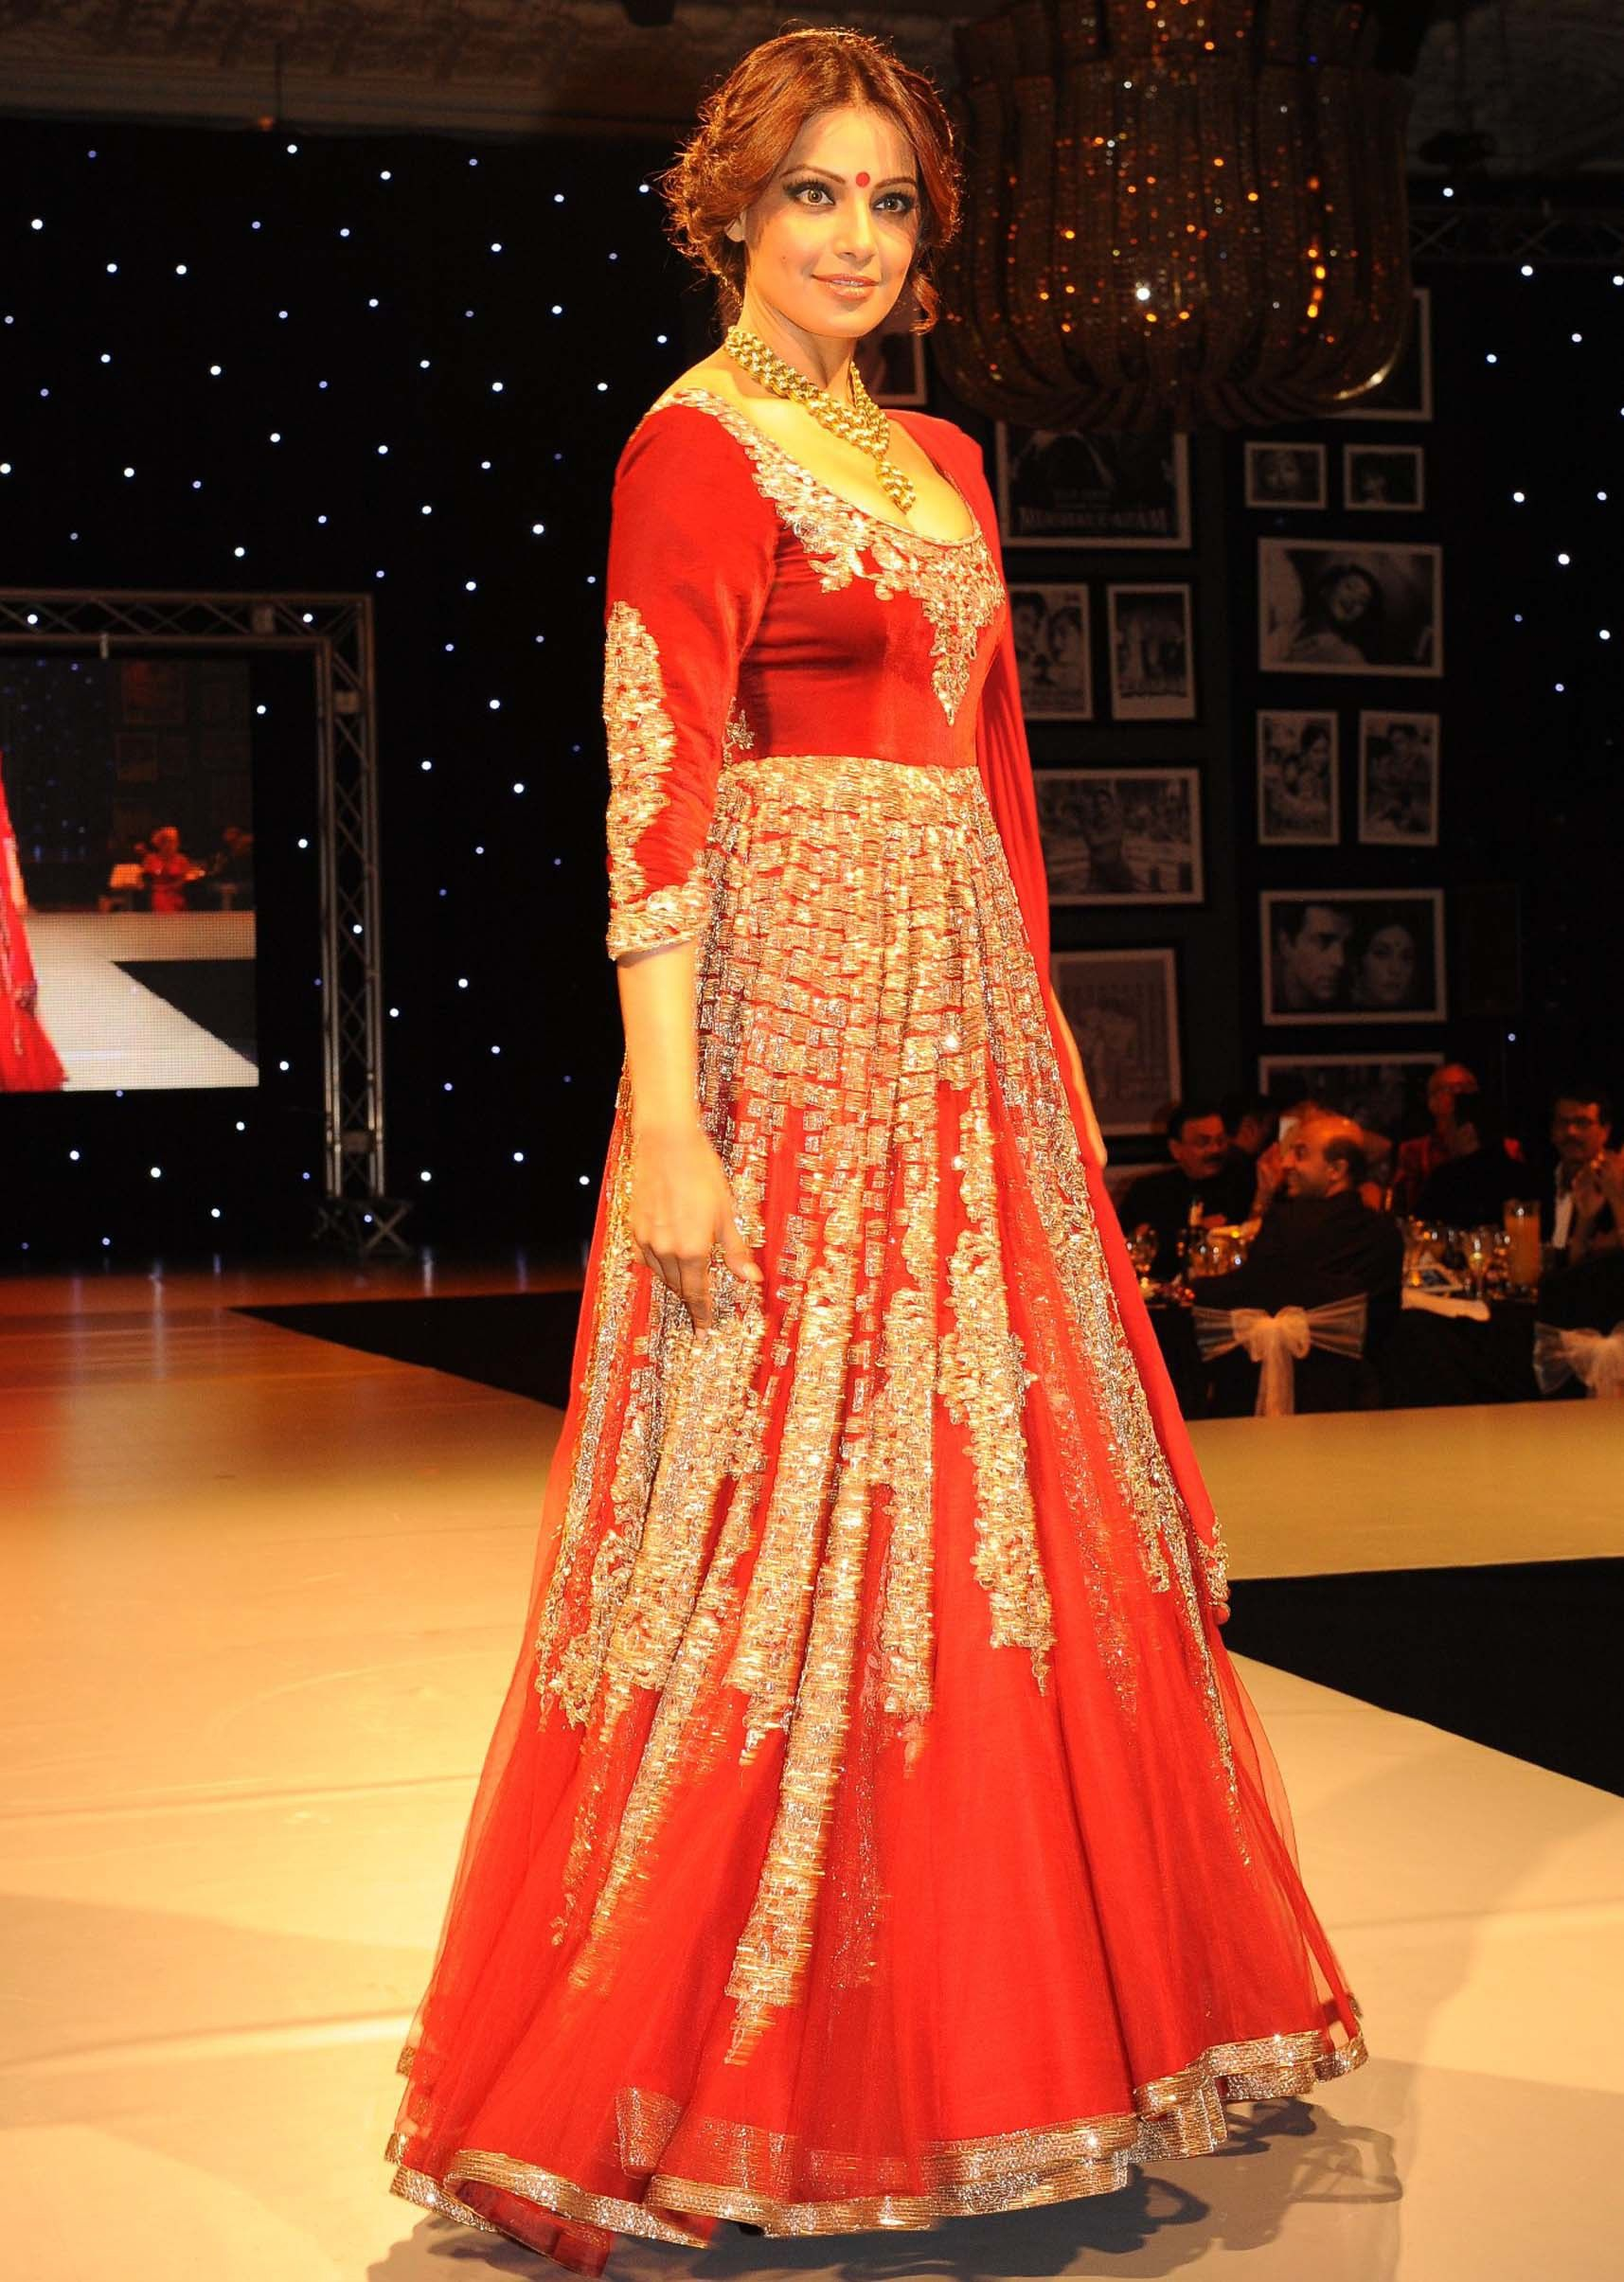 Bipasha basu in red dress walking the ramp for manish malhotra festive collection in london